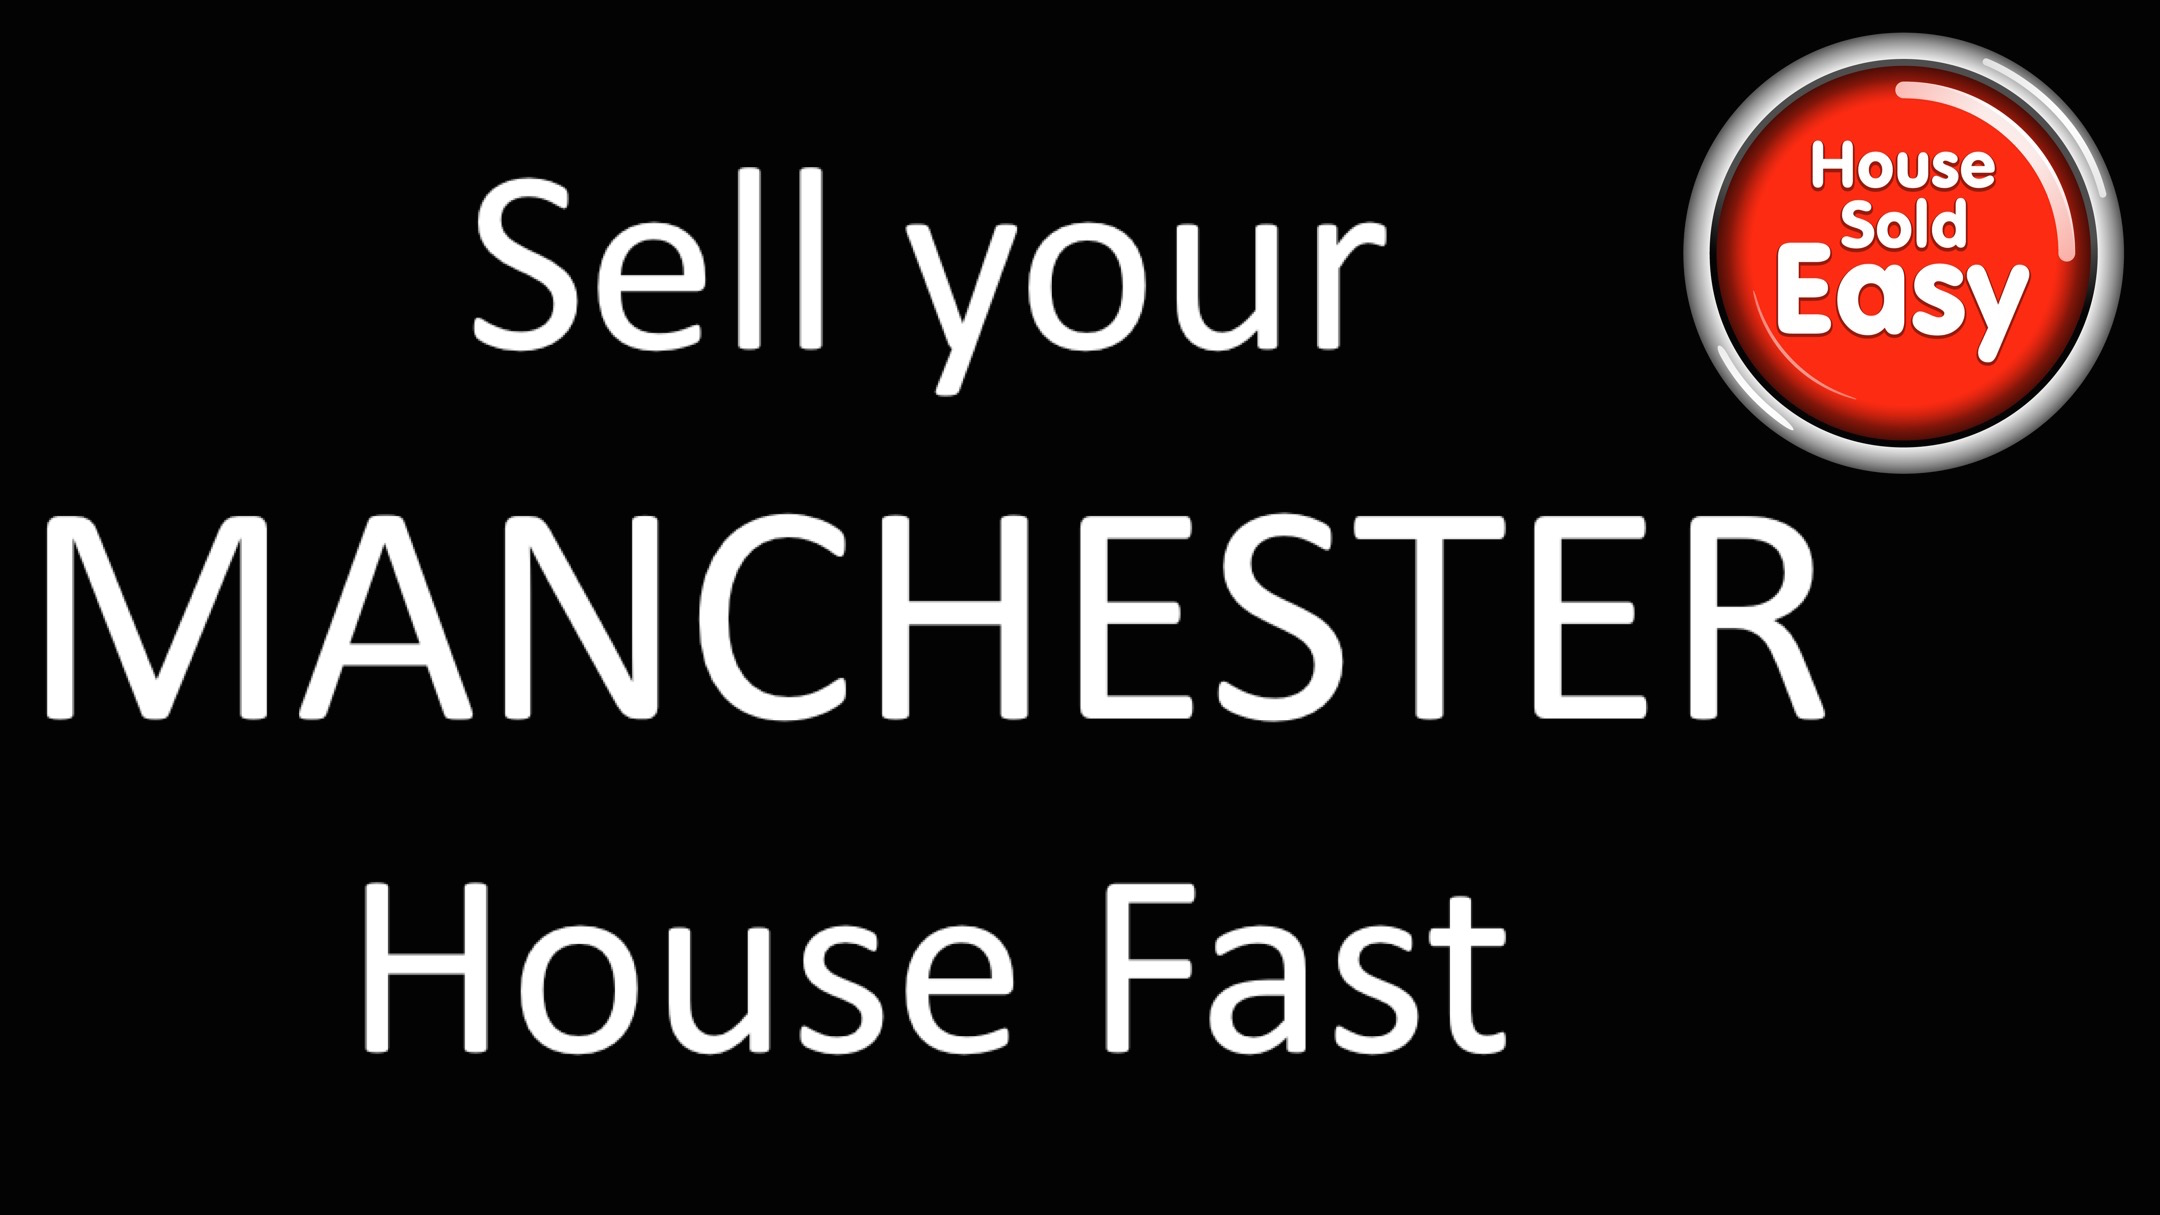 Sell House Fast Manchester With House Sold Easy  St Louis. Best Auto Loan Rates For 60 Months. Meaningful Use Of Electronic Health Records. Blog Content Syndication Srt Challenger Specs. Framingham Osteoporosis Study. Treatment For Burns On Fingers. Java Accounting Software The Best Flash Games. India Alternative Energy Okc Swing Dance Club. Top Music Business Schools Nissan Az Dealers